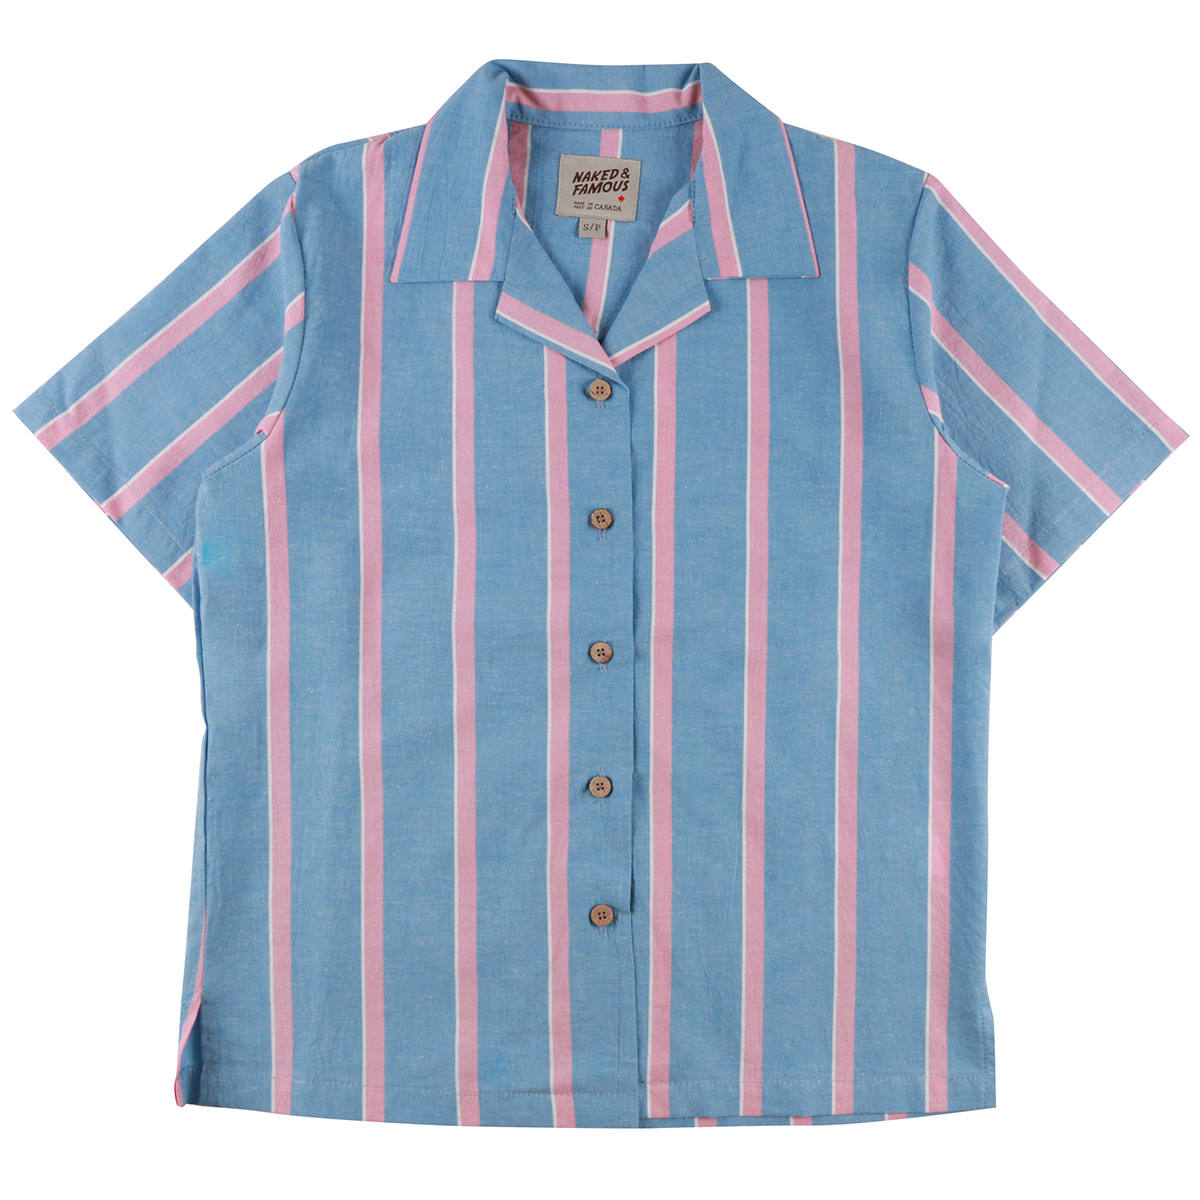 CHAMBRAY SLUB STRIPE - SKY BLUE - Camp Collar Shirt